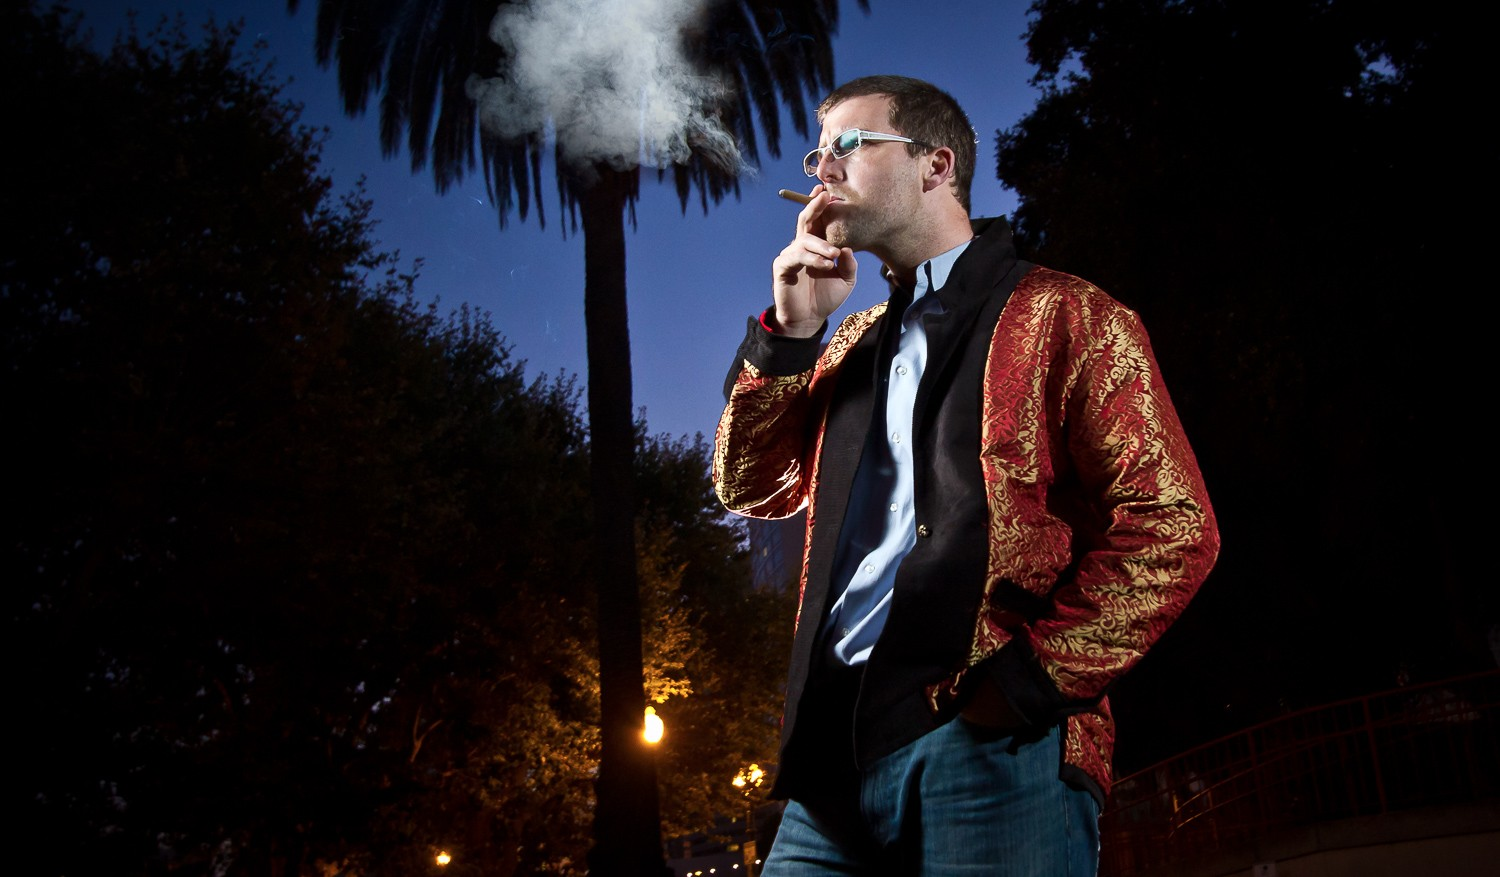 20110822_smoking_jacket-3548-Edit